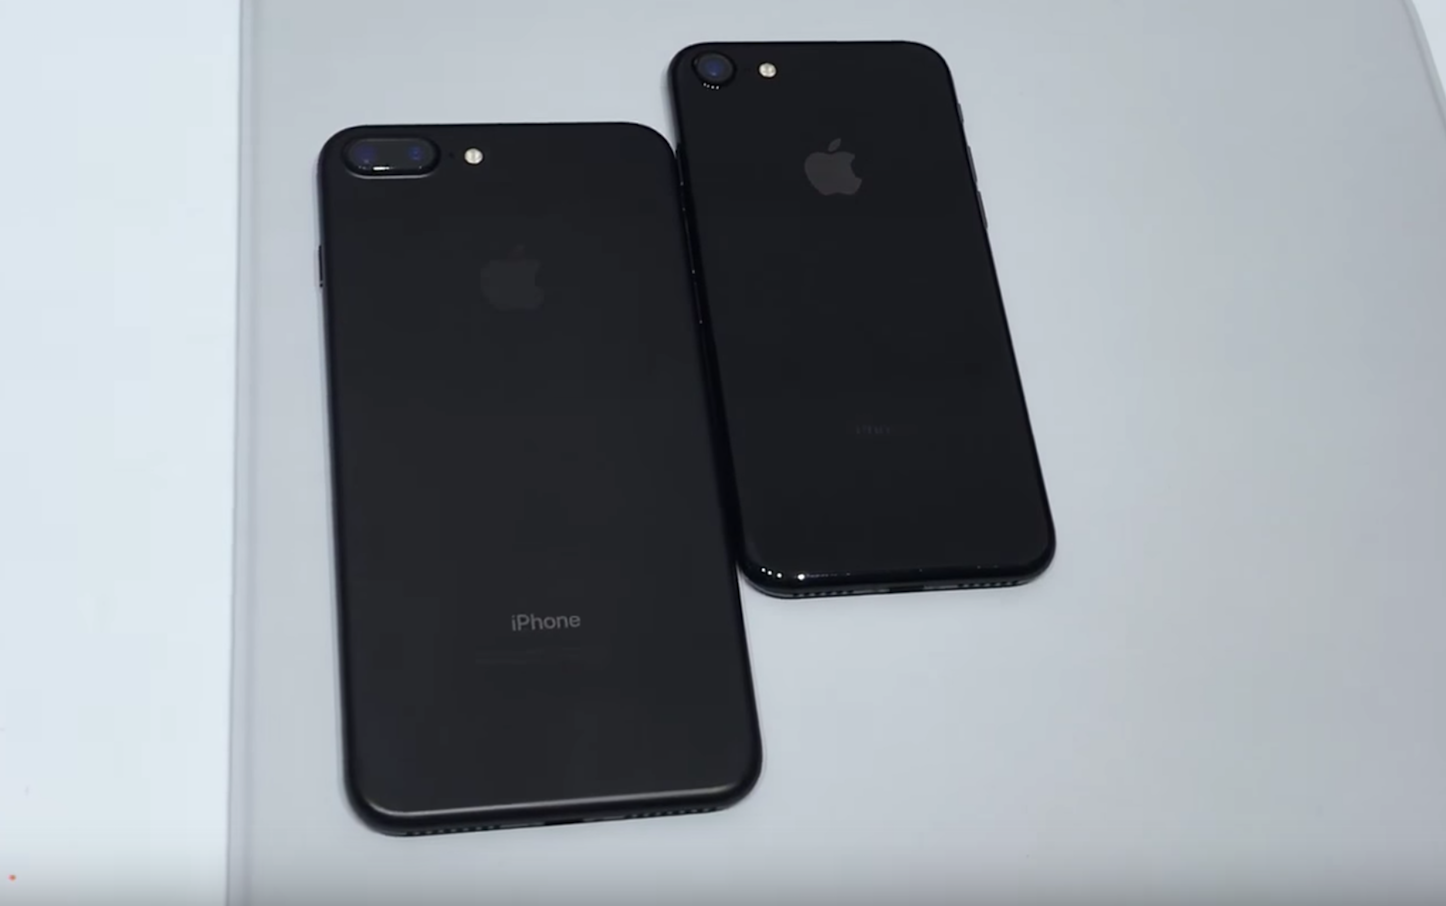 Iphone7 jetblack black comparison